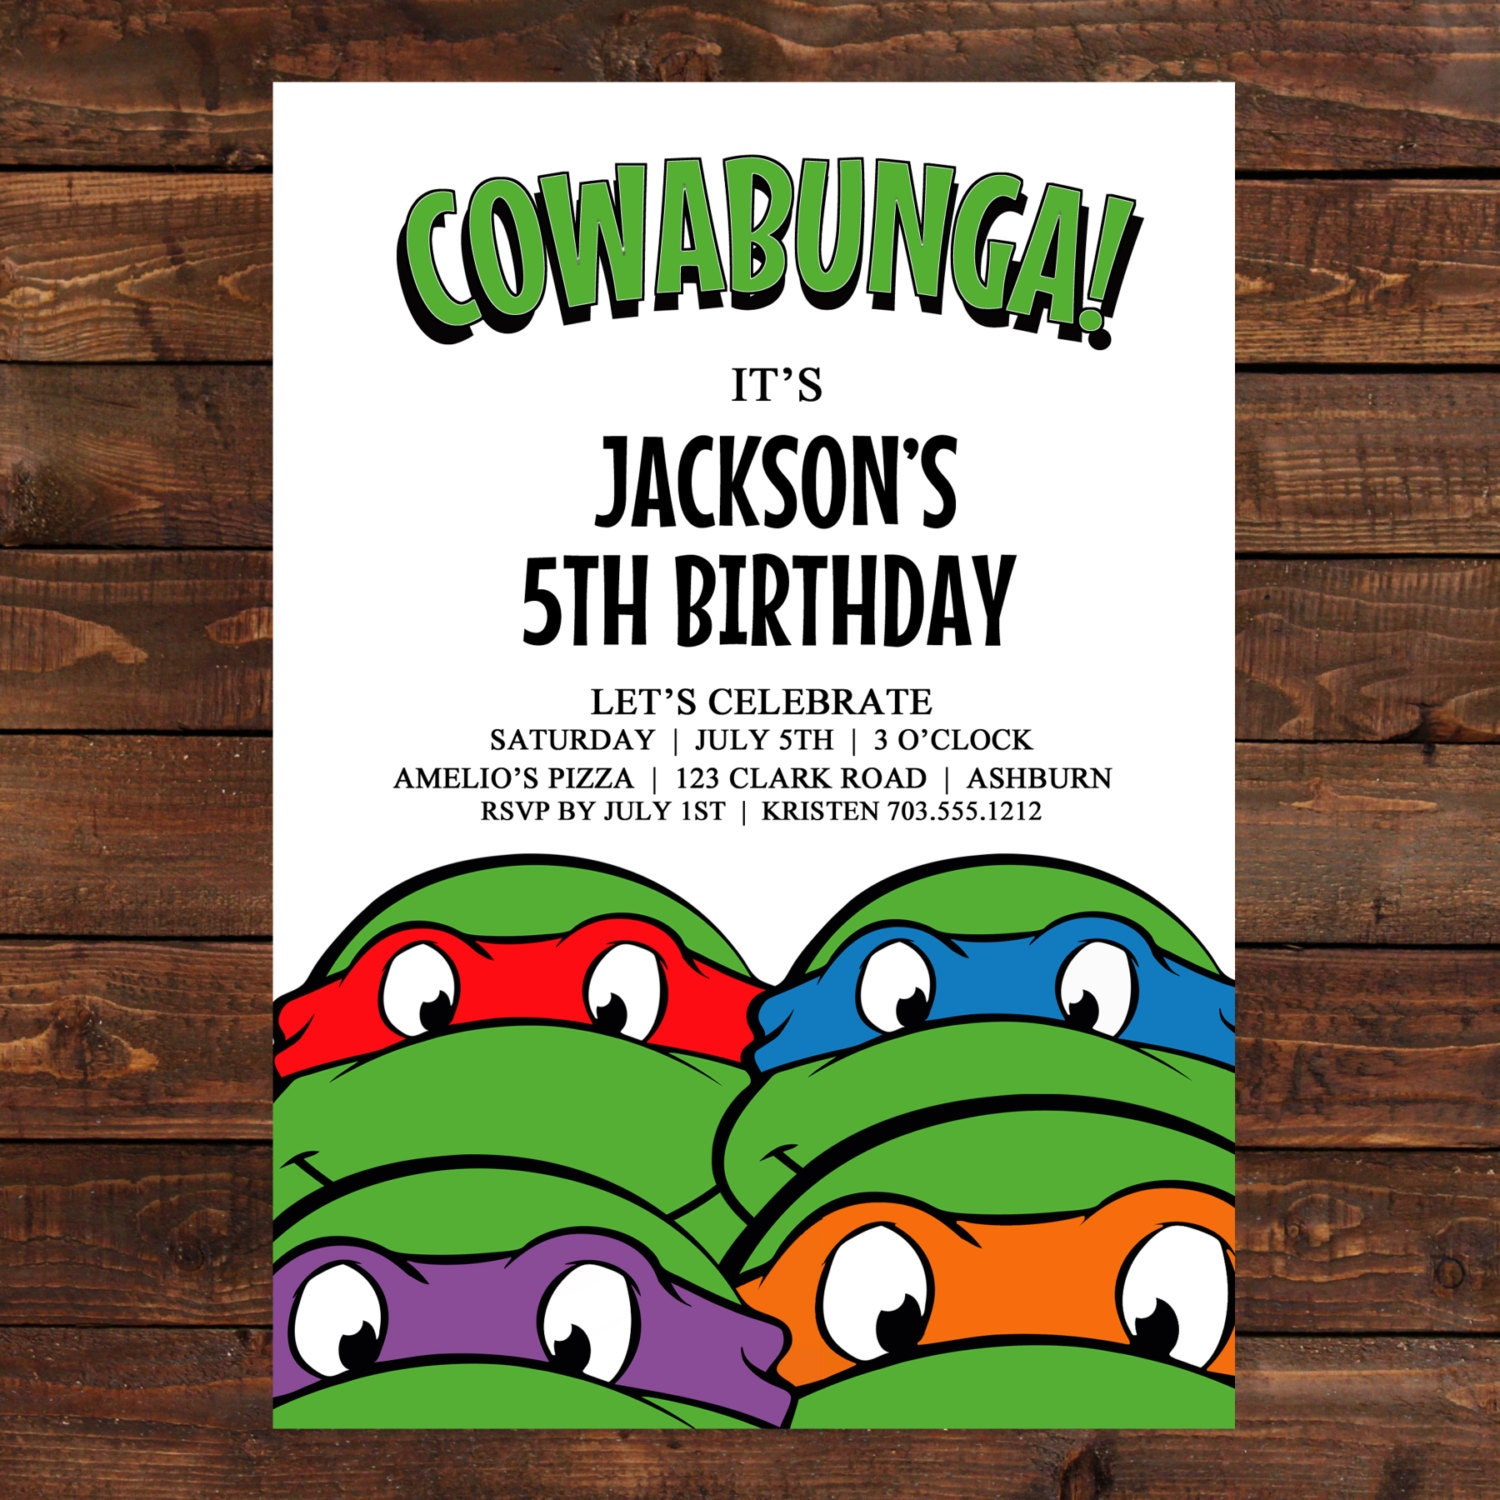 Personalized Ninja Turtle Invitations is perfect invitations design